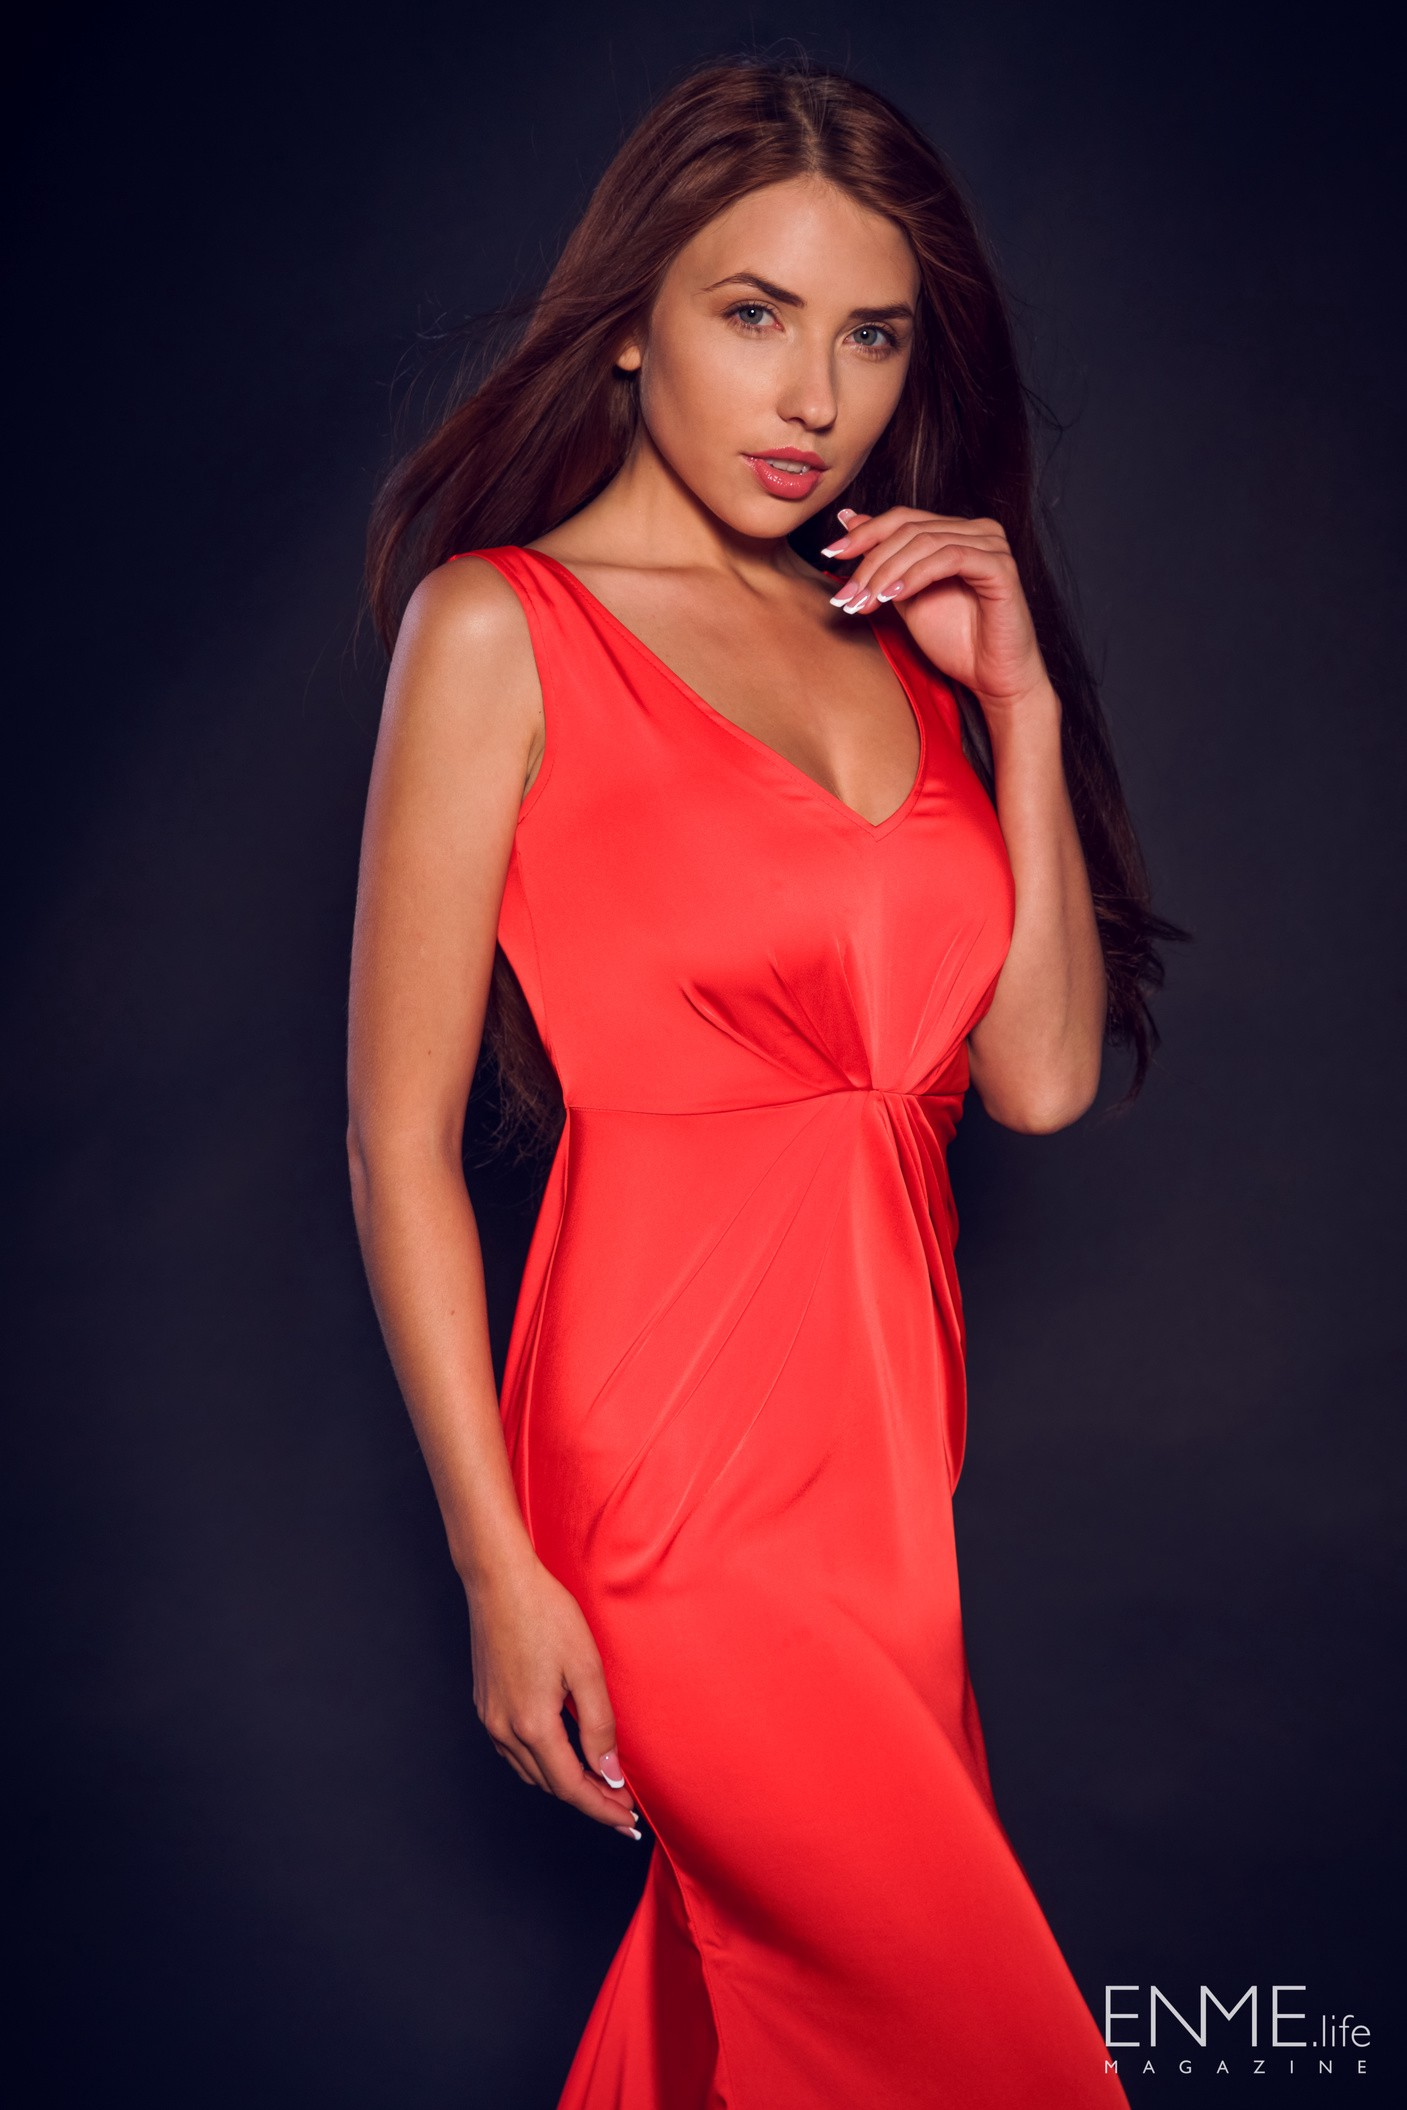 Bangalore Escort Service young women are just those immaculate partners.  Women offering escort organizations isn't something new to the city of  India.